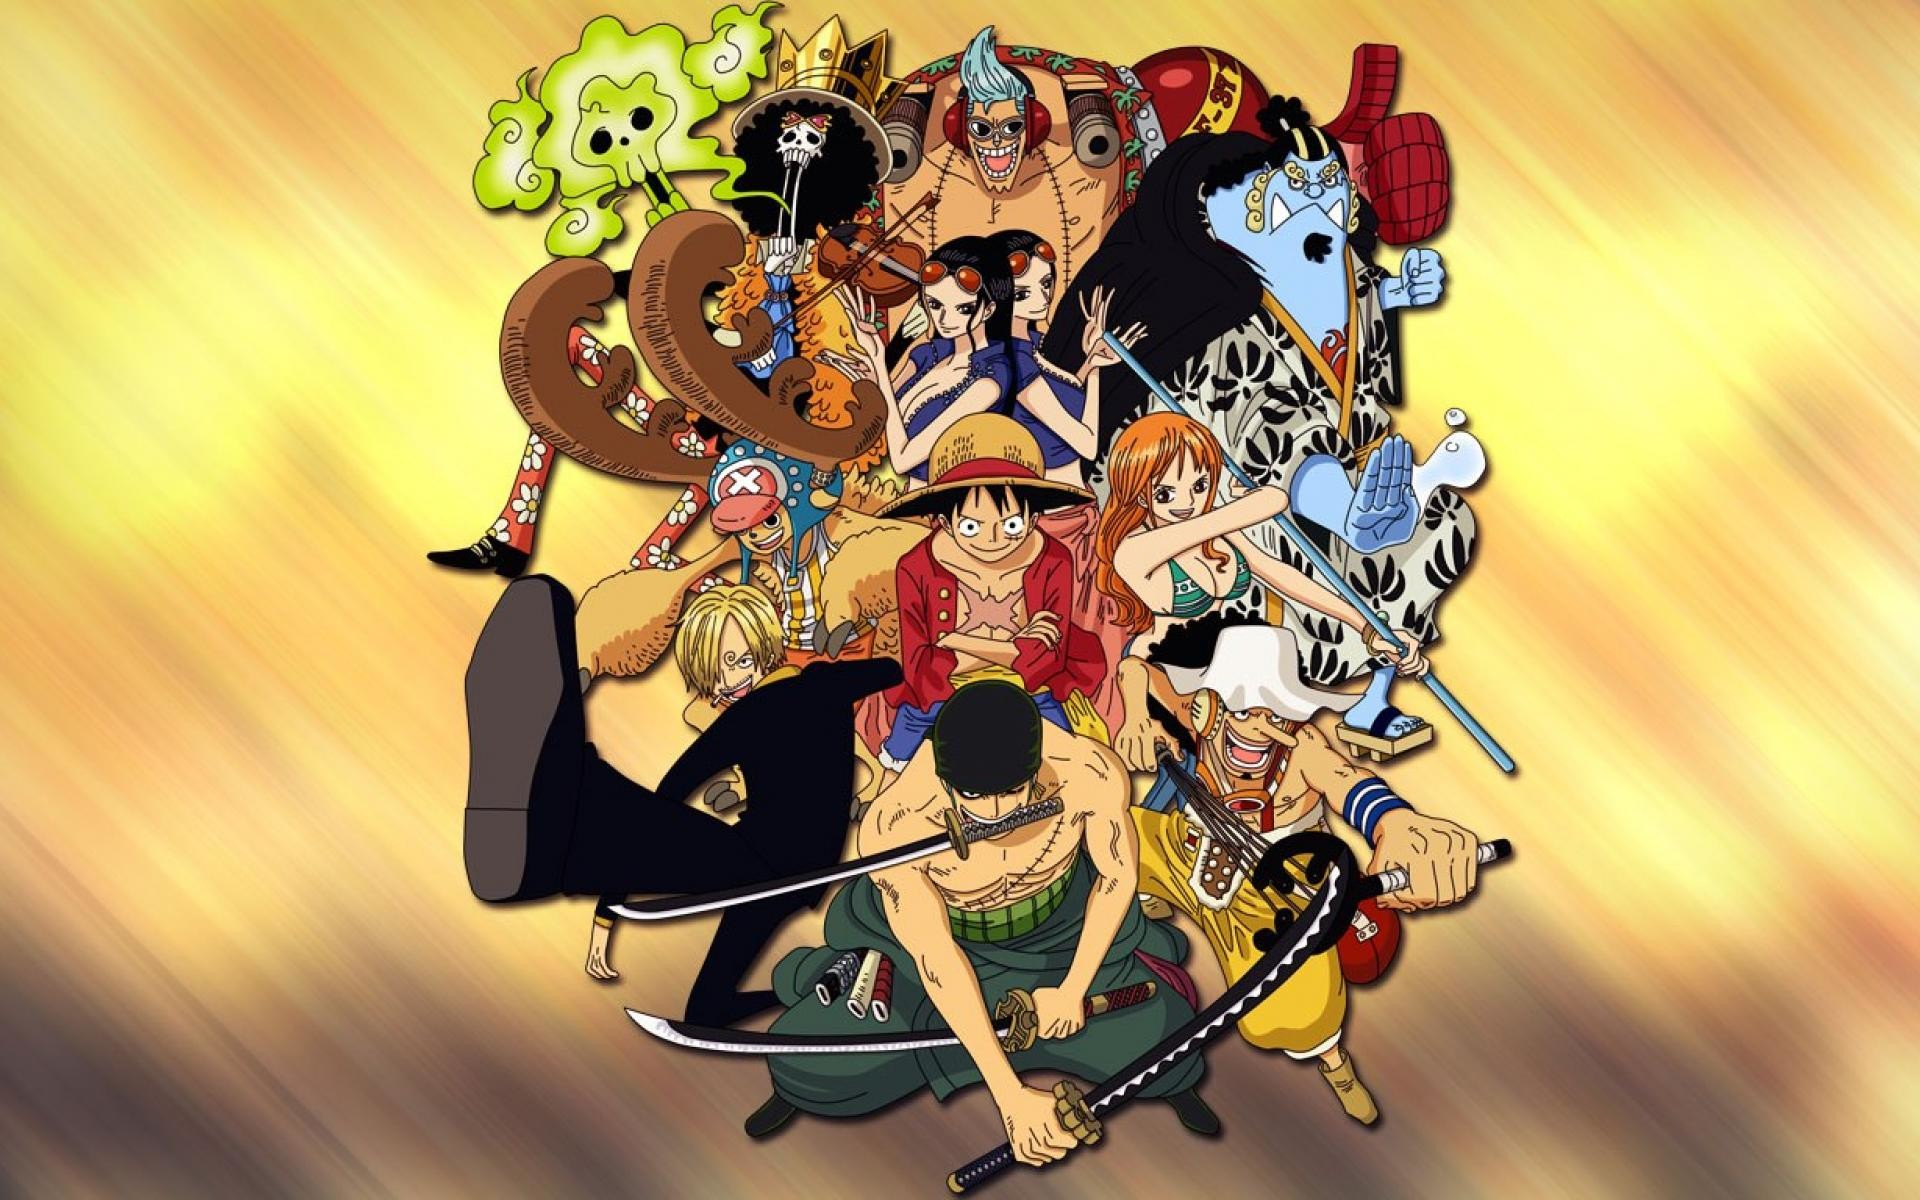 145 One Piece Chopper Android Iphone Desktop Hd Backgrounds Wallpapers 1080p 4k 1920x1200 2020